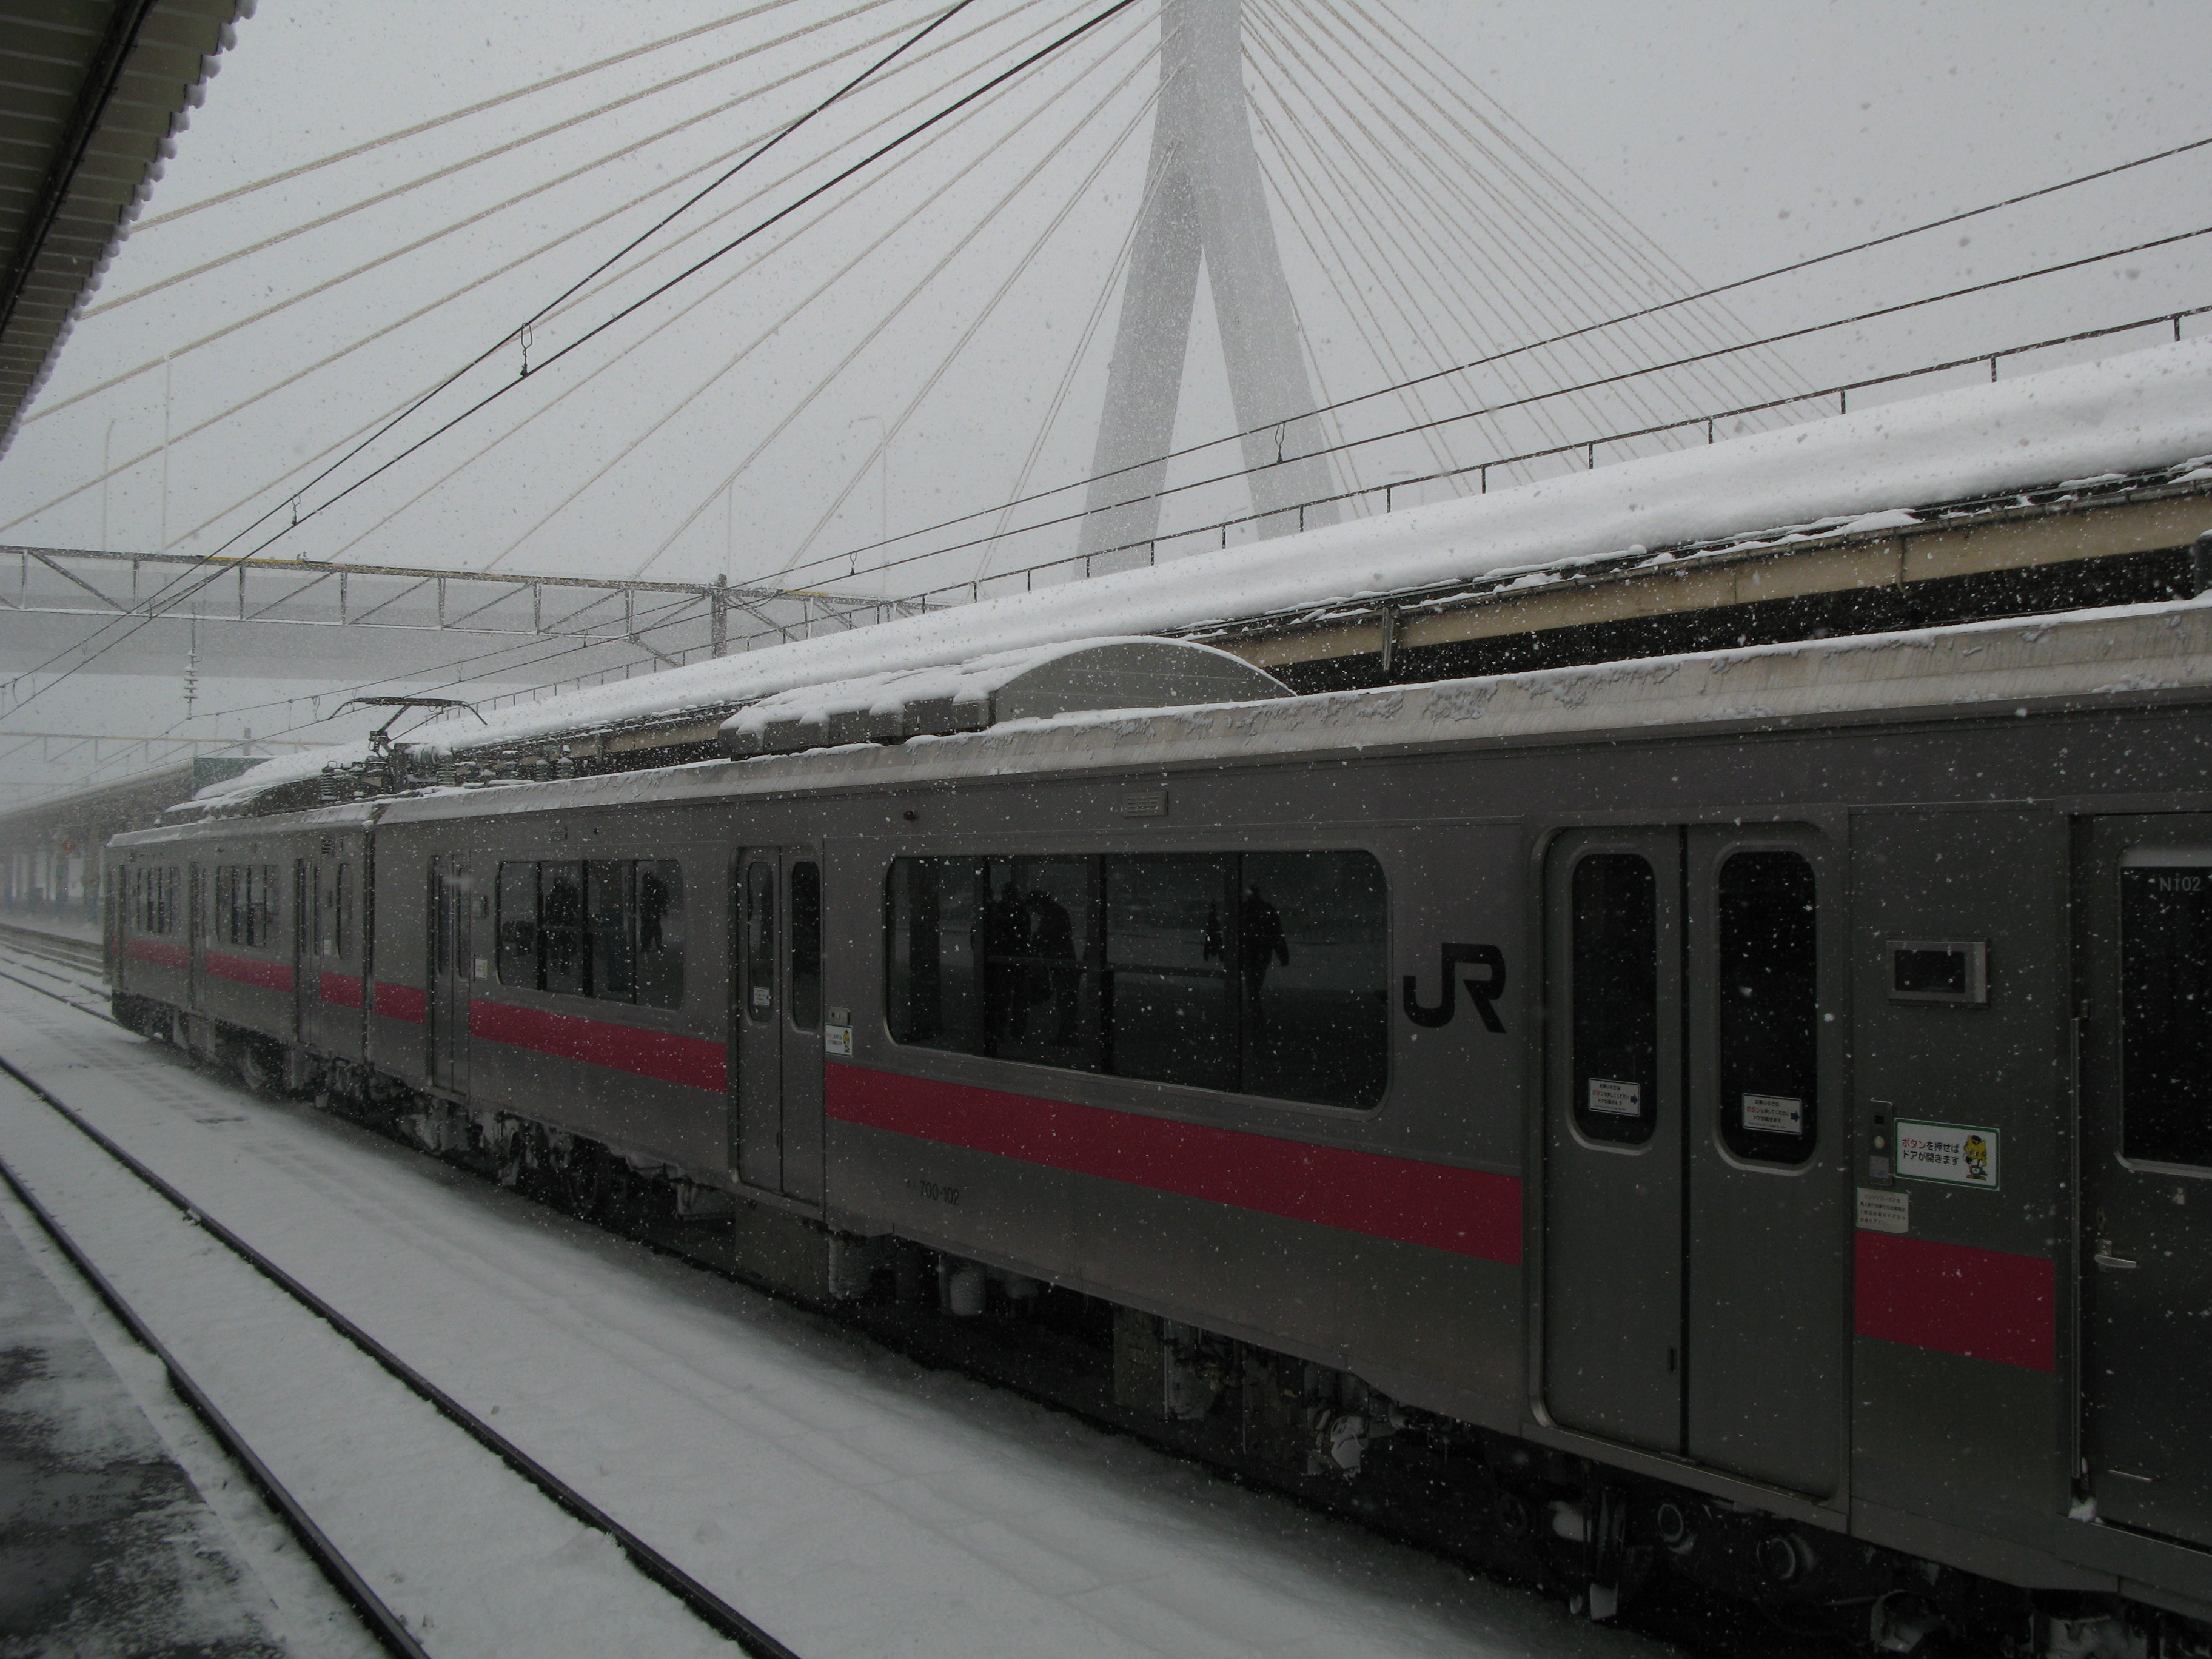 a JR train waiting at a ralway station platform with falling snow